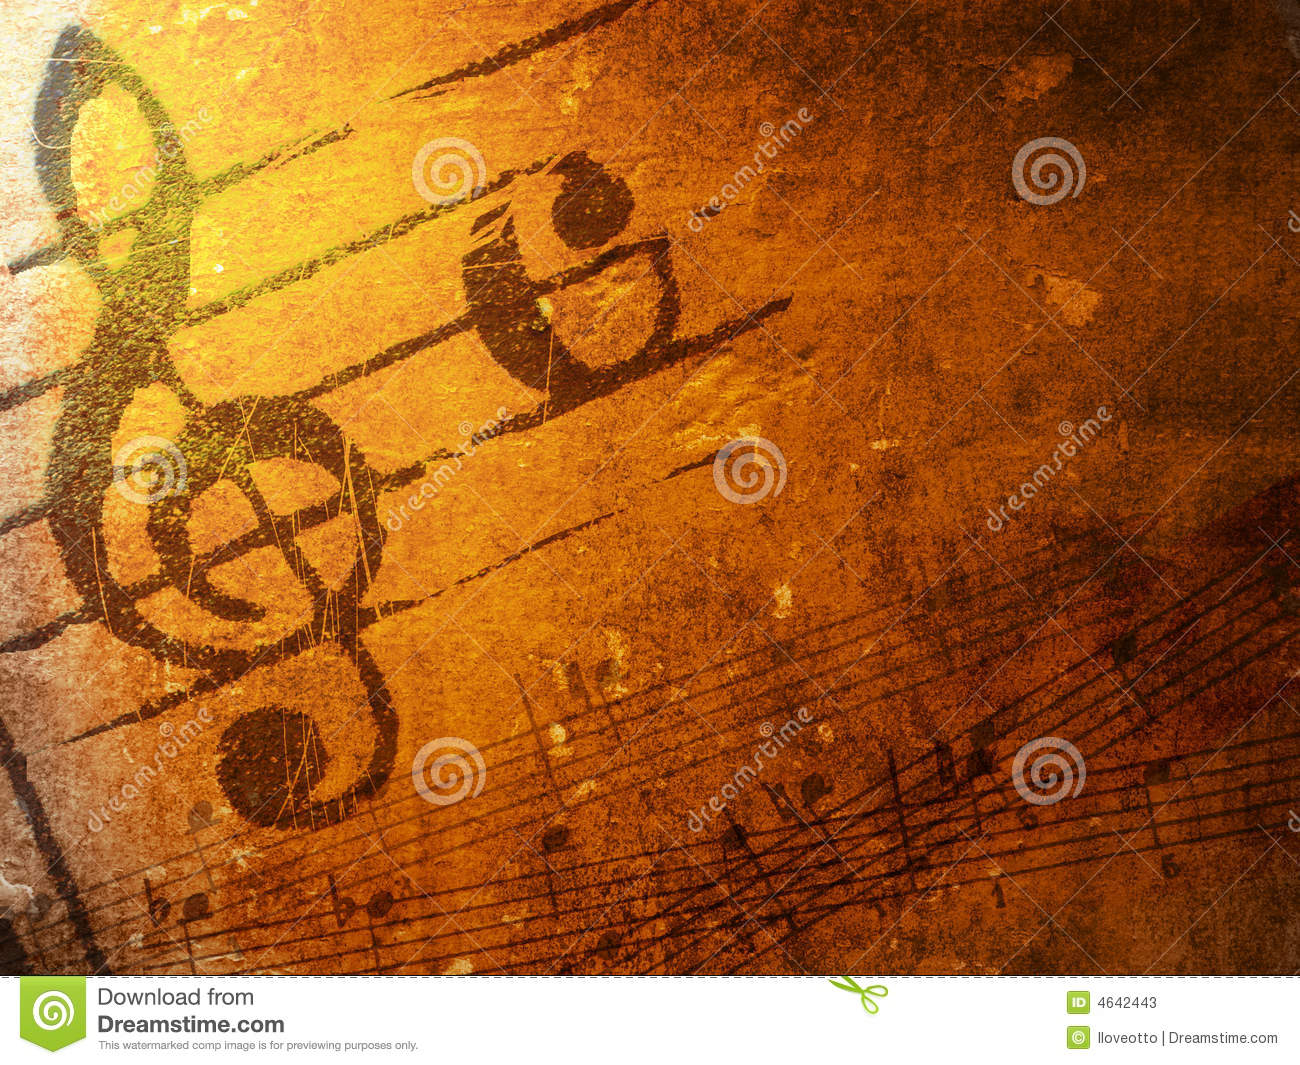 grunge music textures and backgrounds stock illustration